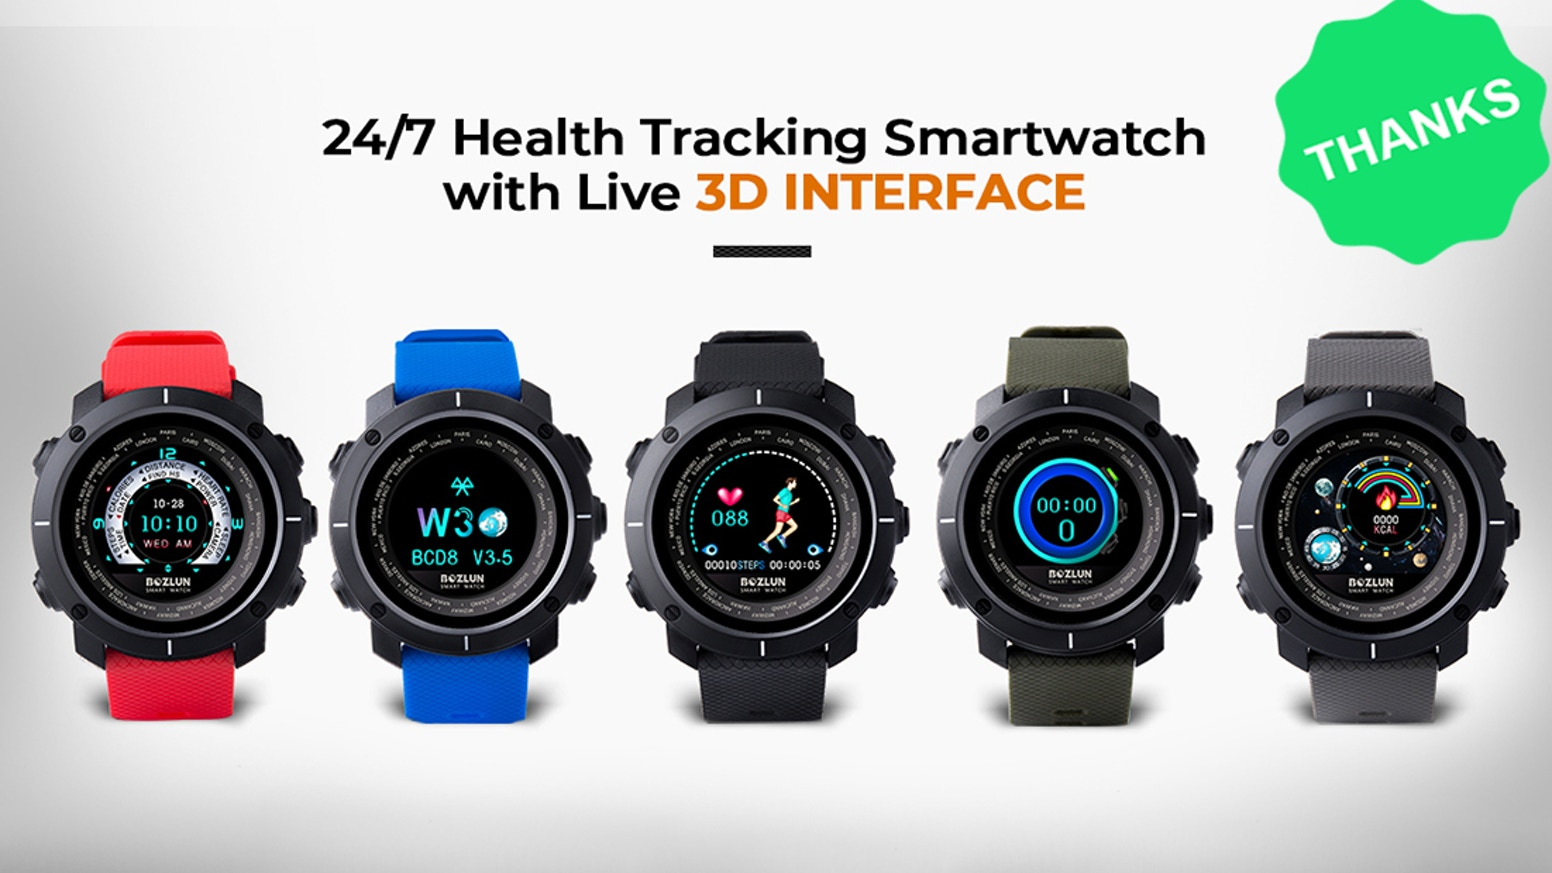 Tracks your heart-rate, analyzes your sleep quality, keeps exercise records and more.